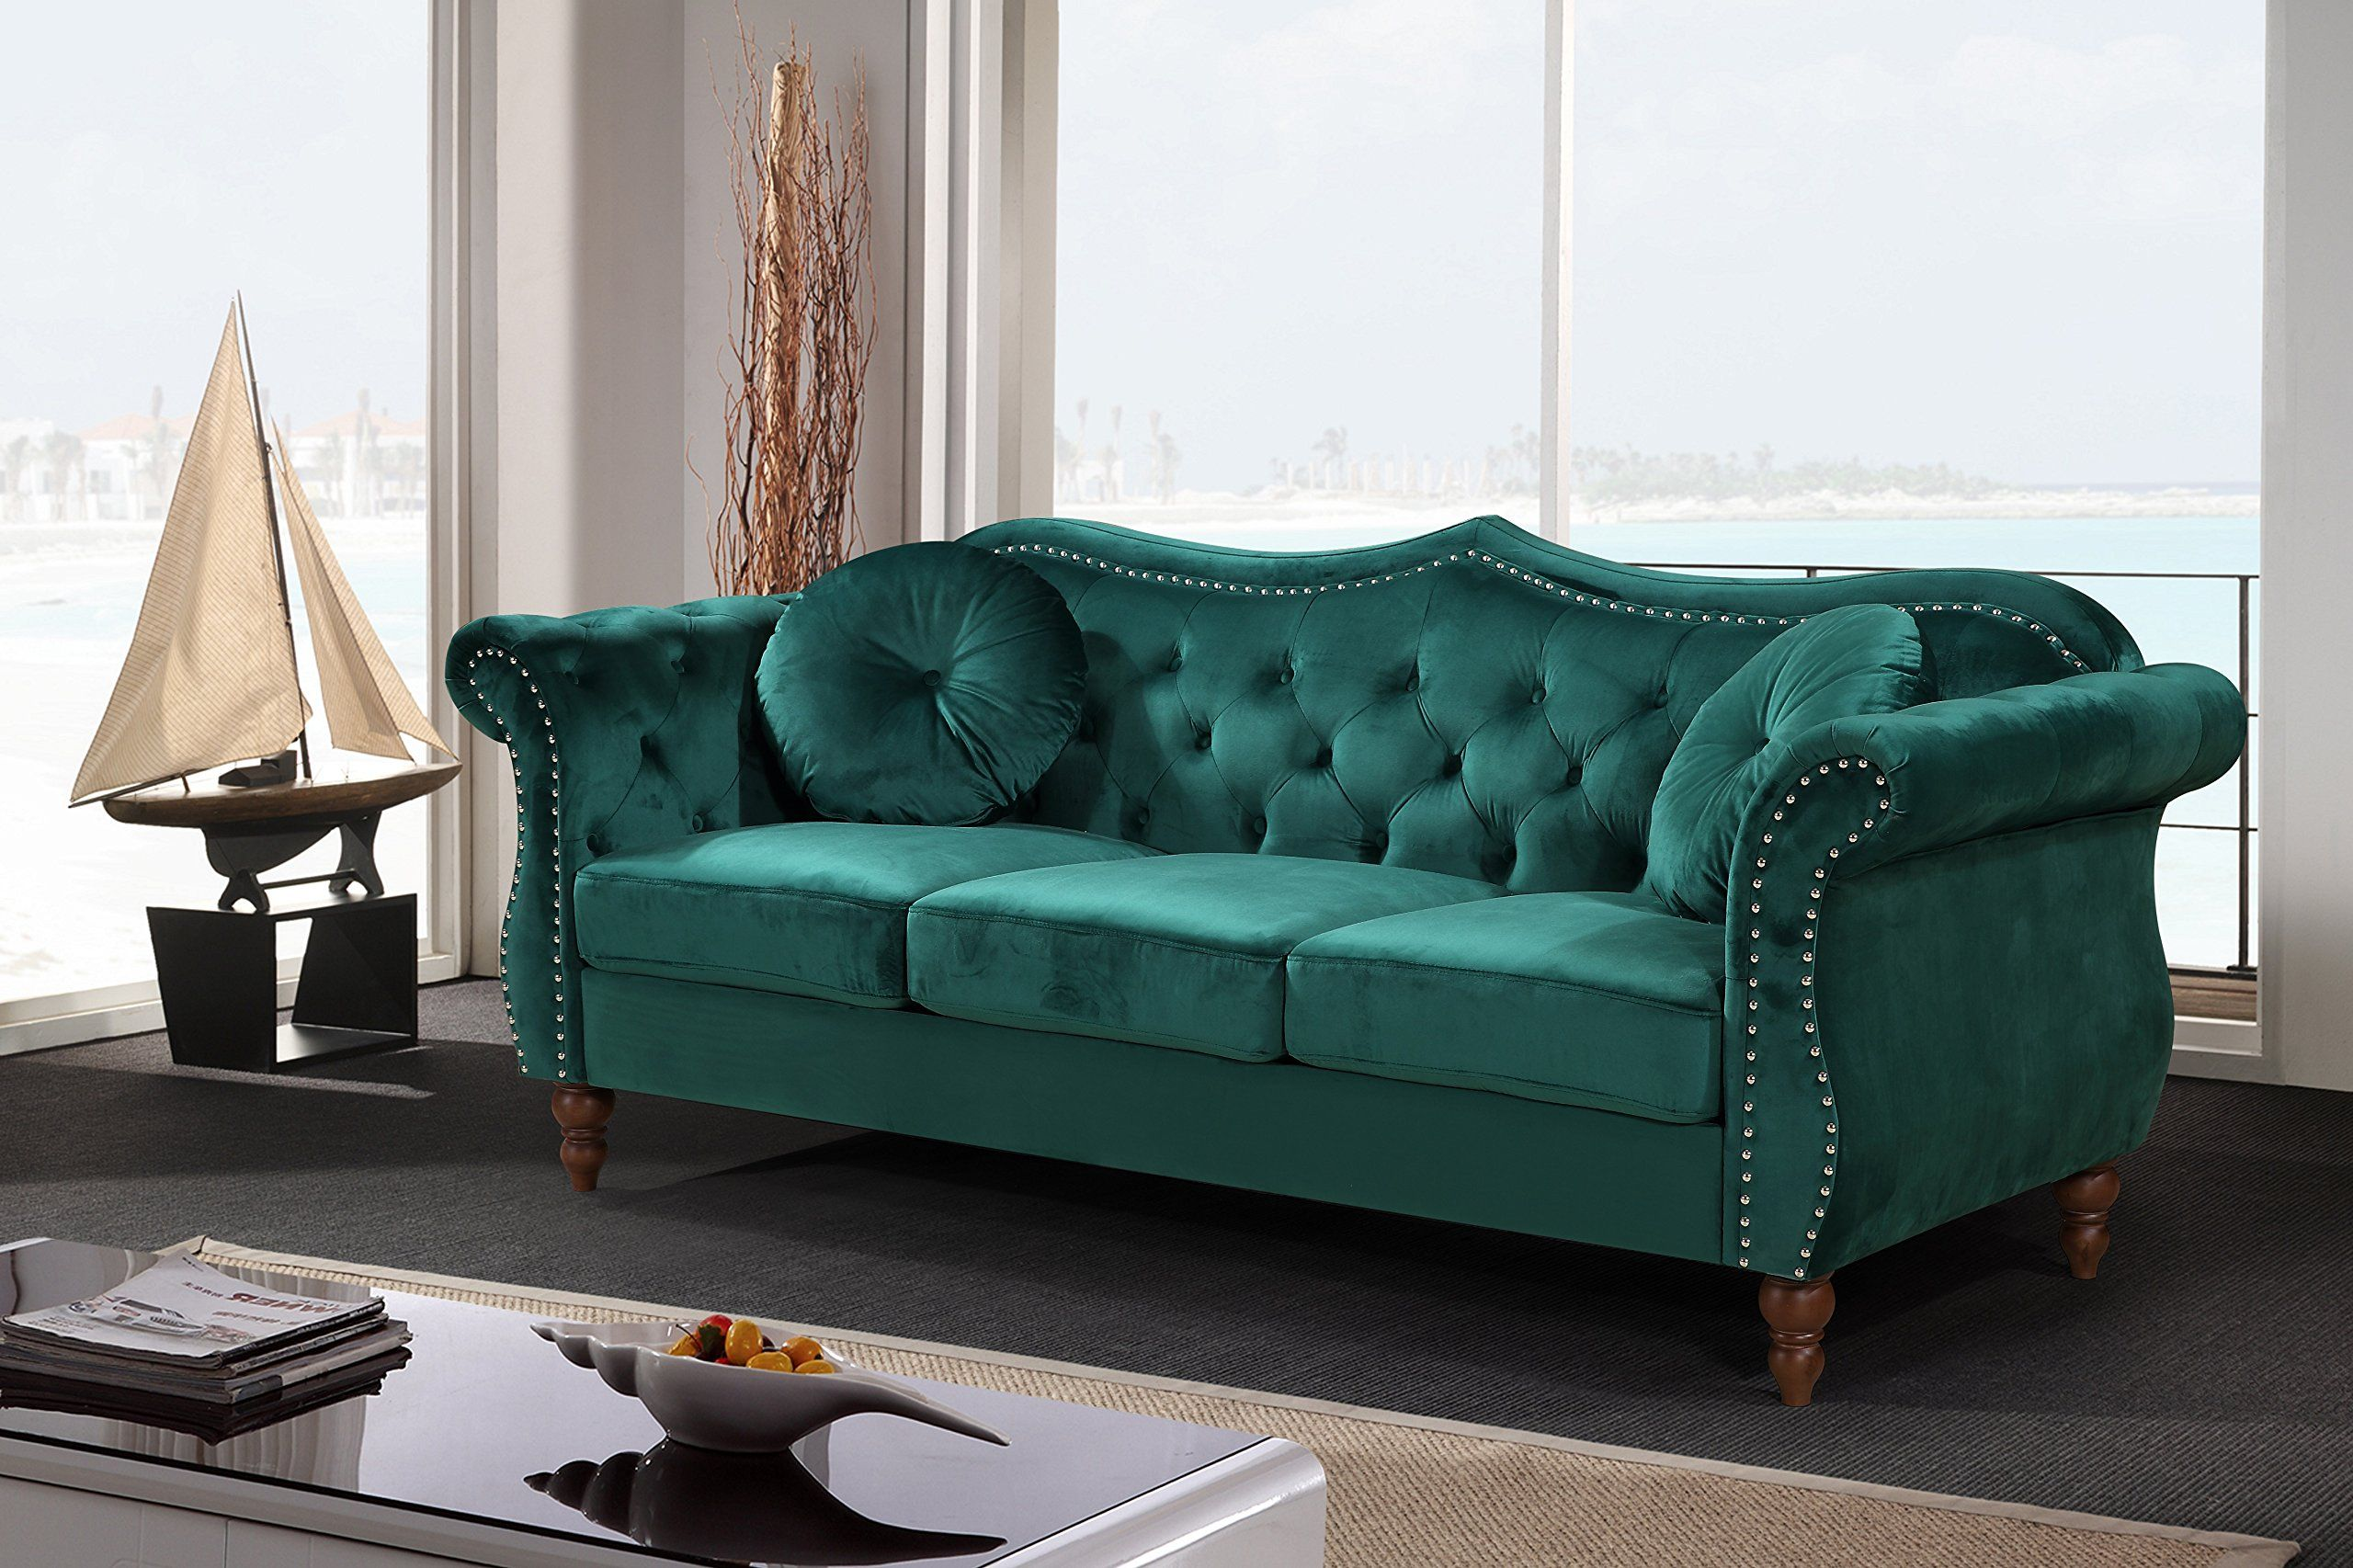 Chesterfield Sofa Riess Ambiente Container Furniture Direct S5367s Anna1 Sofa Green More Info